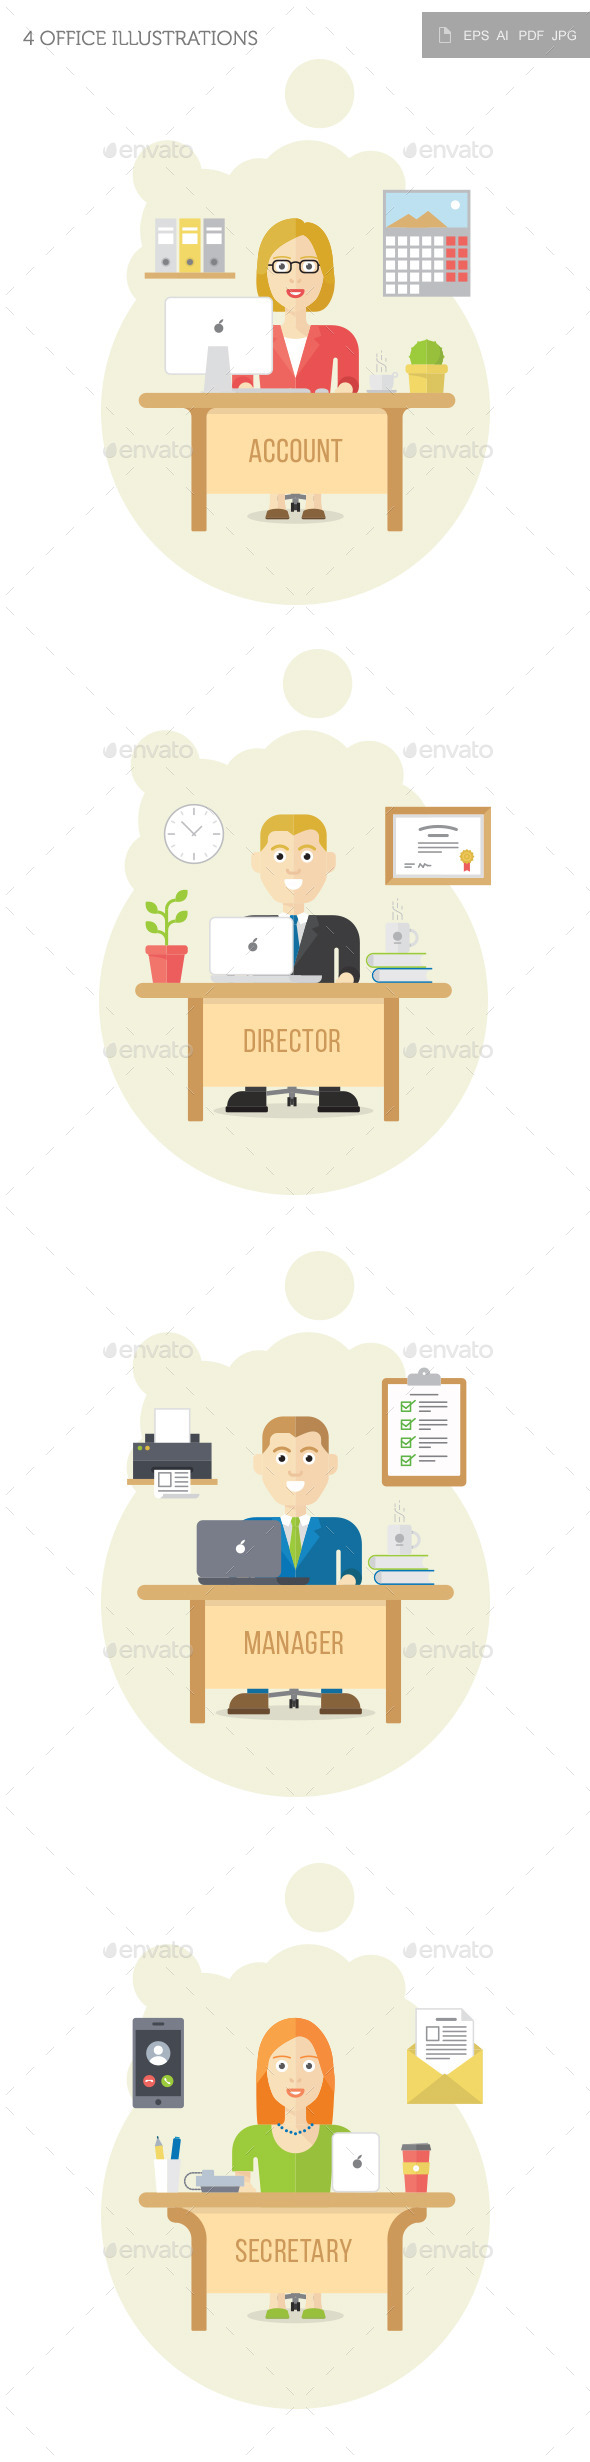 GraphicRiver 4 Office Illustrations 10587929